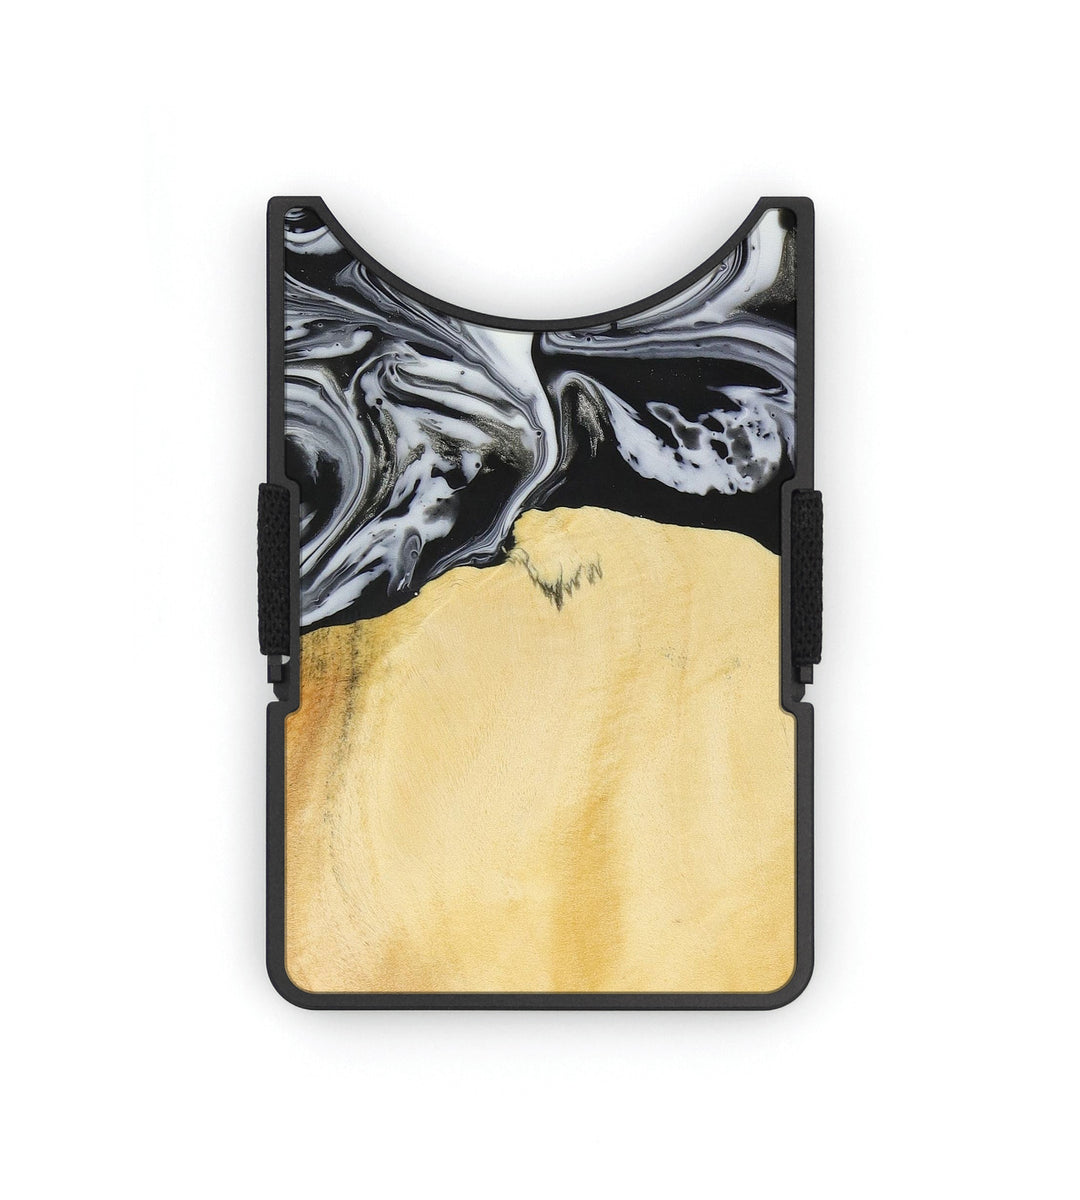 Alloy Wood+Resin Wallet - Eve (Black & White, 393684)